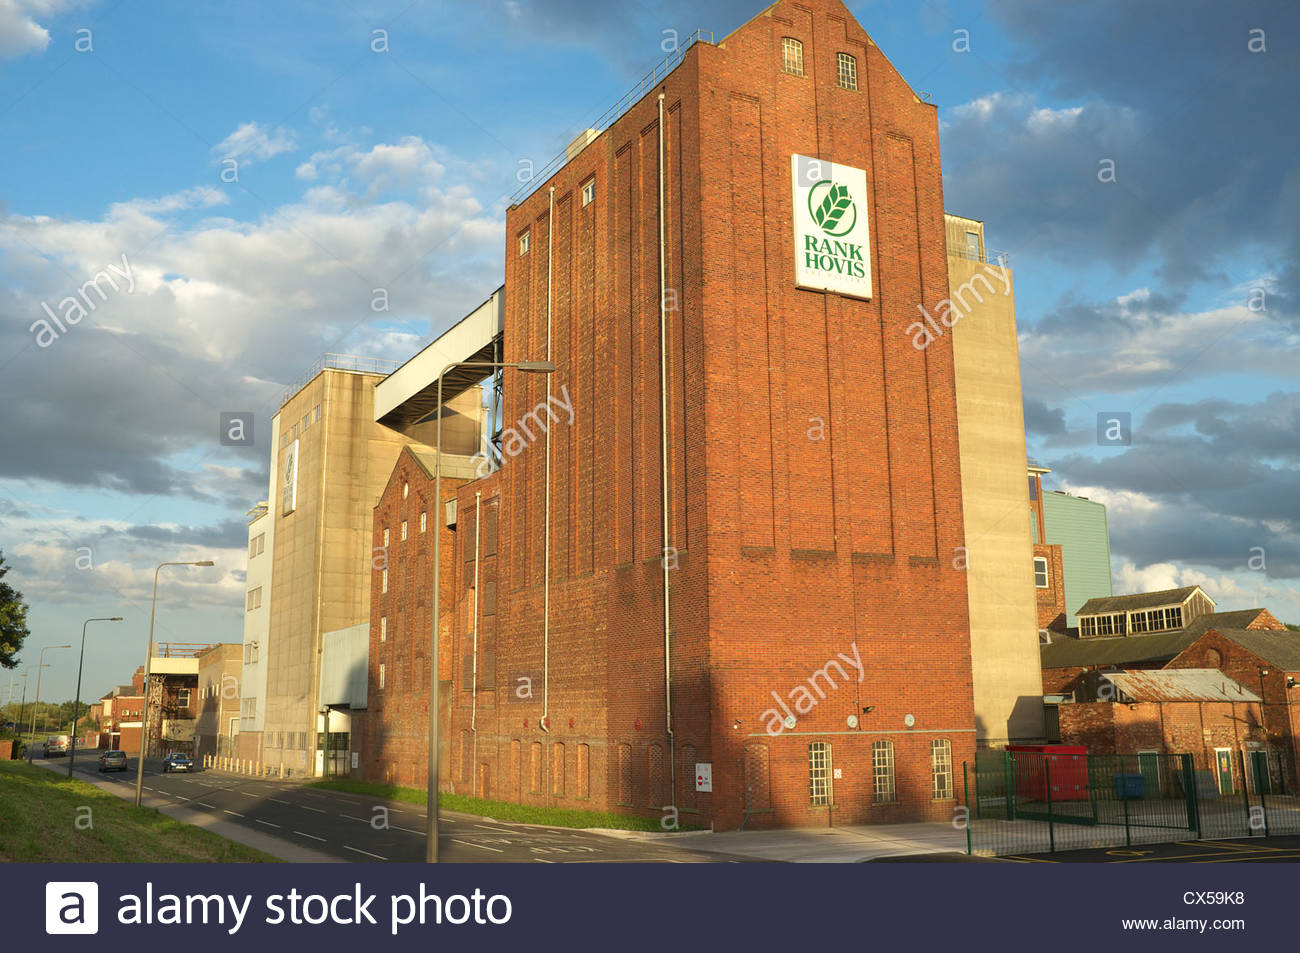 Rank Hovis, Imperial Flour Mills, Barlby Road, Selby, Yorkshire, UK. - Stock Image